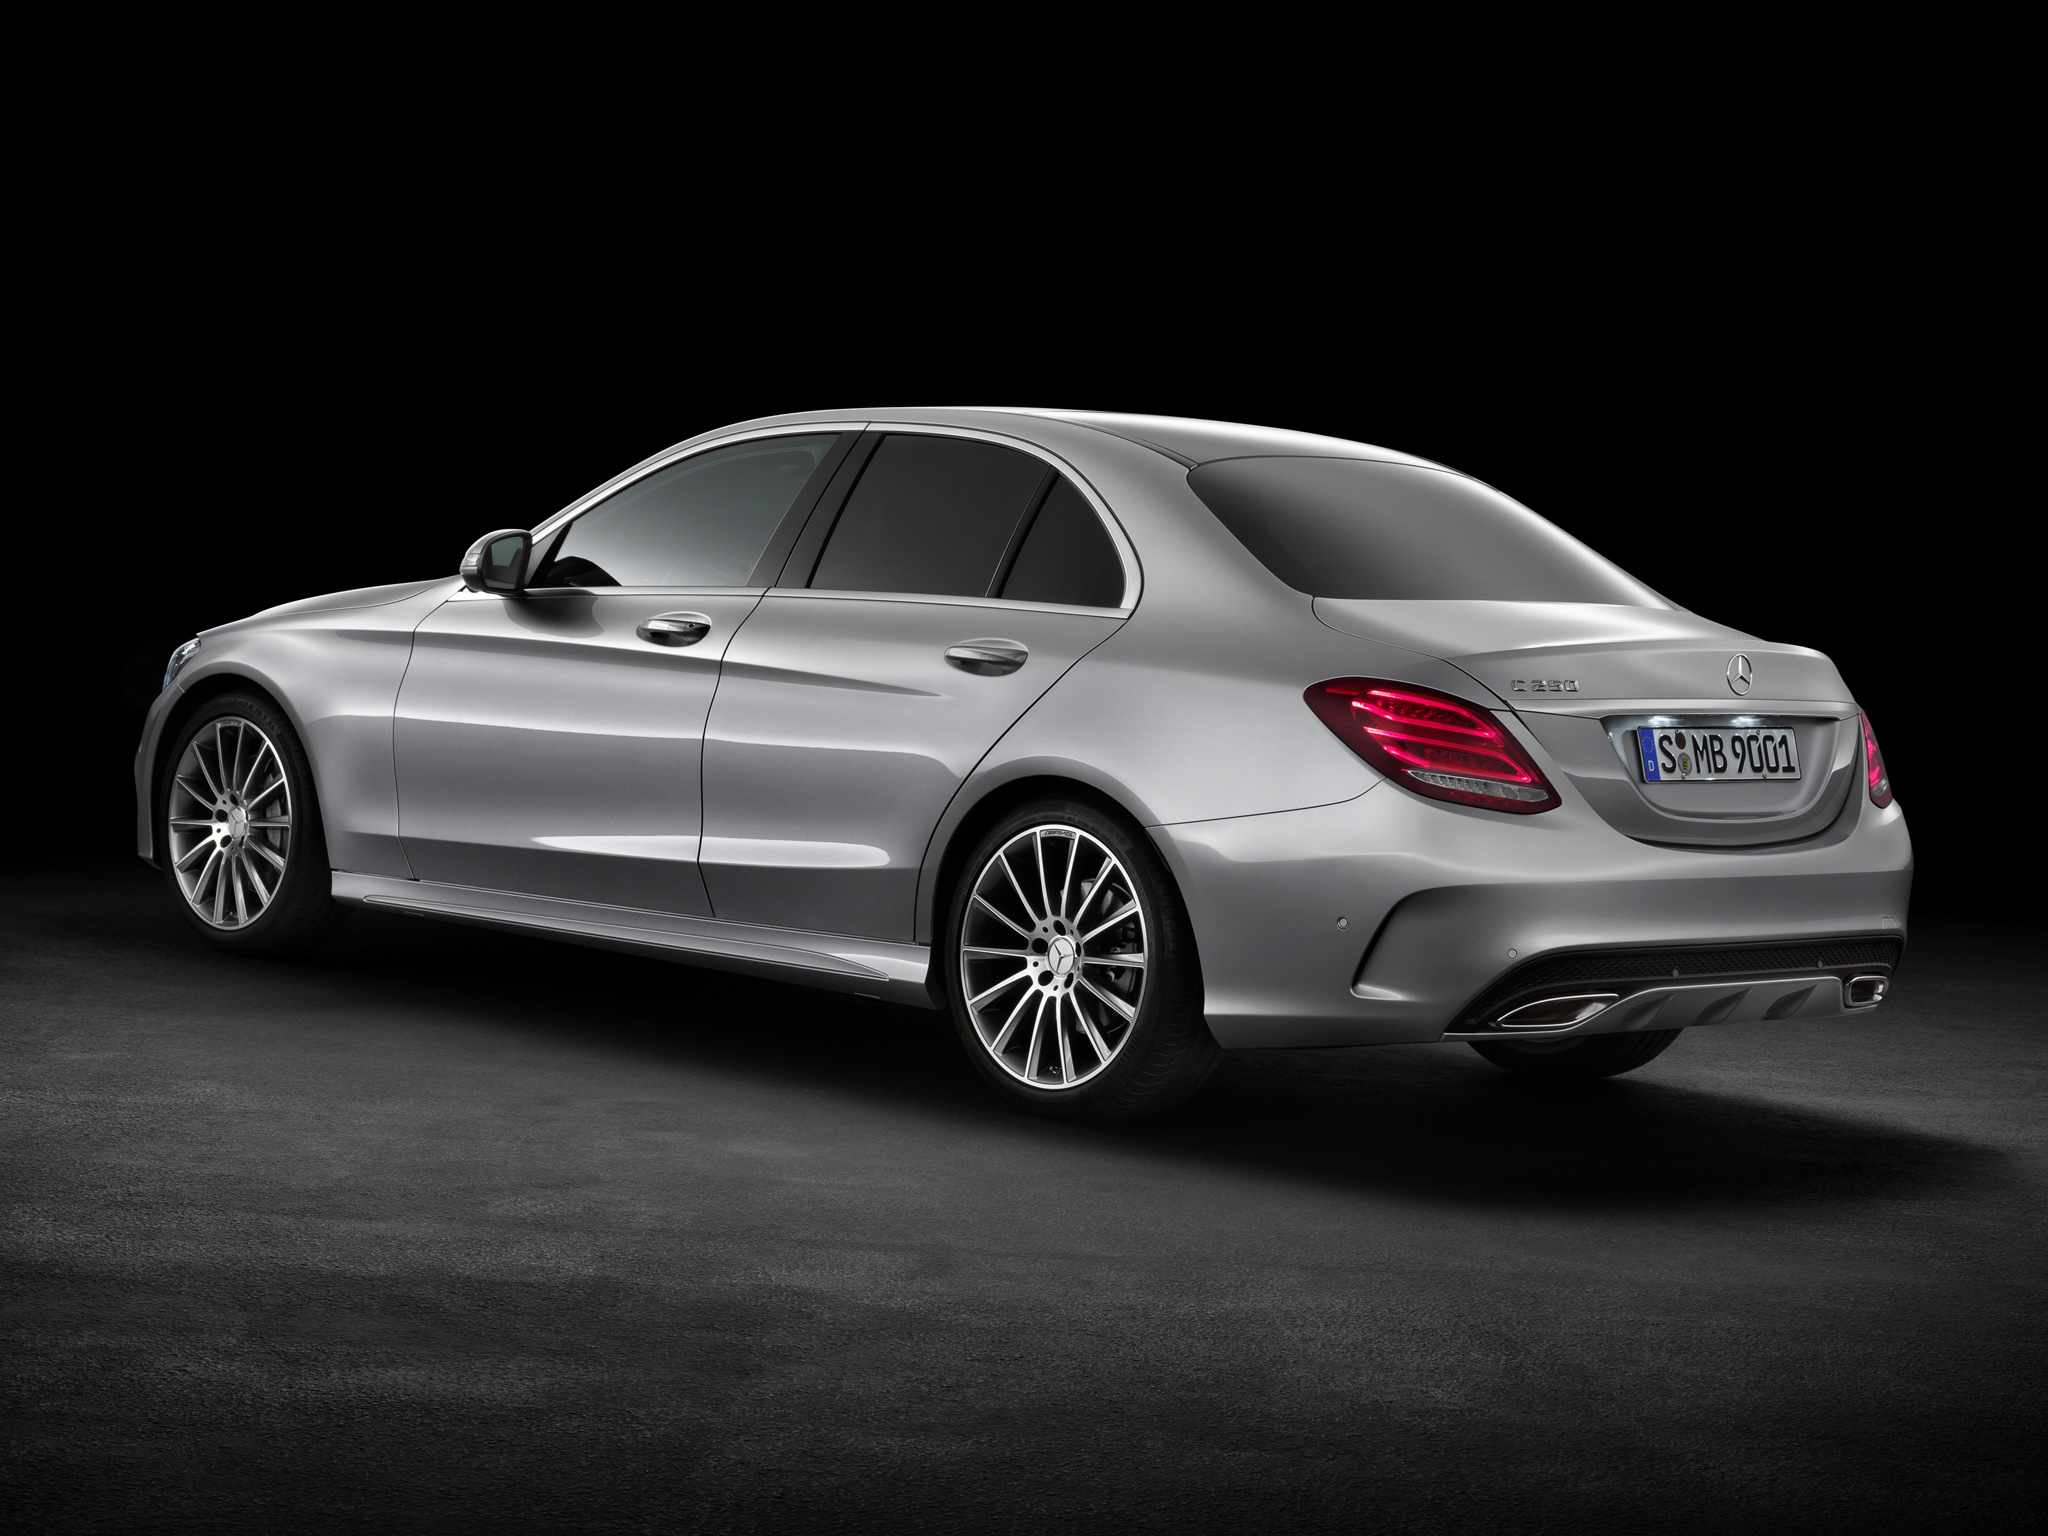 2014 mercedes benz c250 amg line w205 luxury f wallpaper. Black Bedroom Furniture Sets. Home Design Ideas